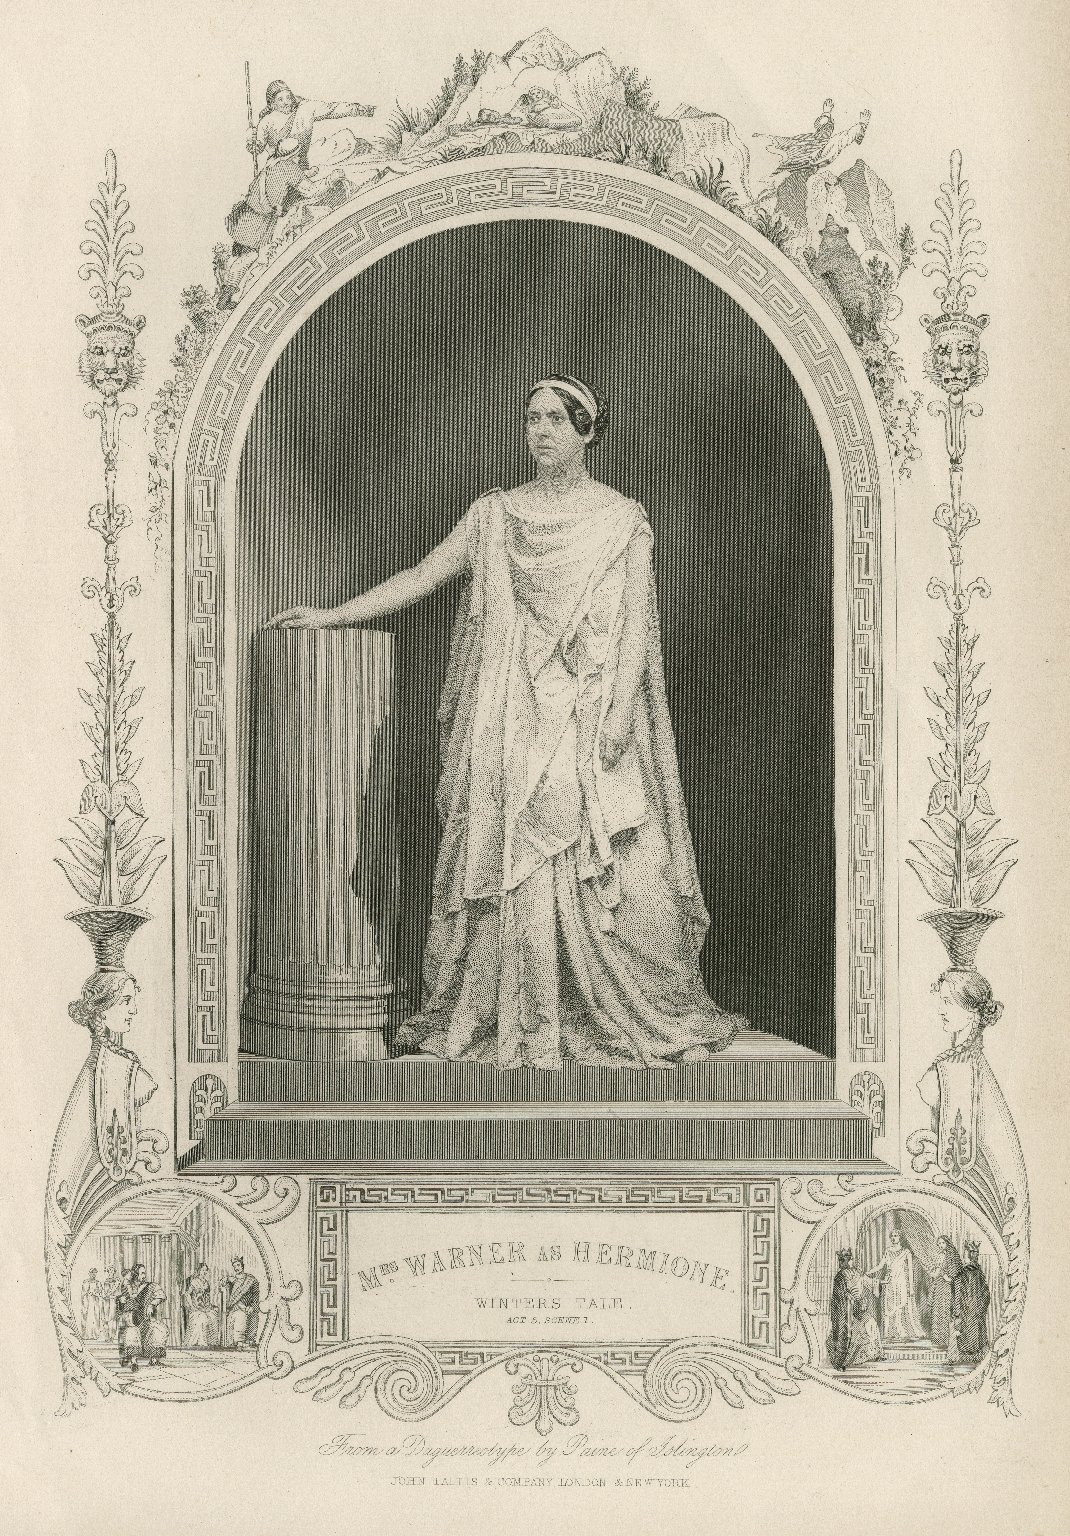 Mrs. Warner as Hermione [in Shakespeare's Winter's tale] [graphic] / from a daguerreotype by Paine of Islington.